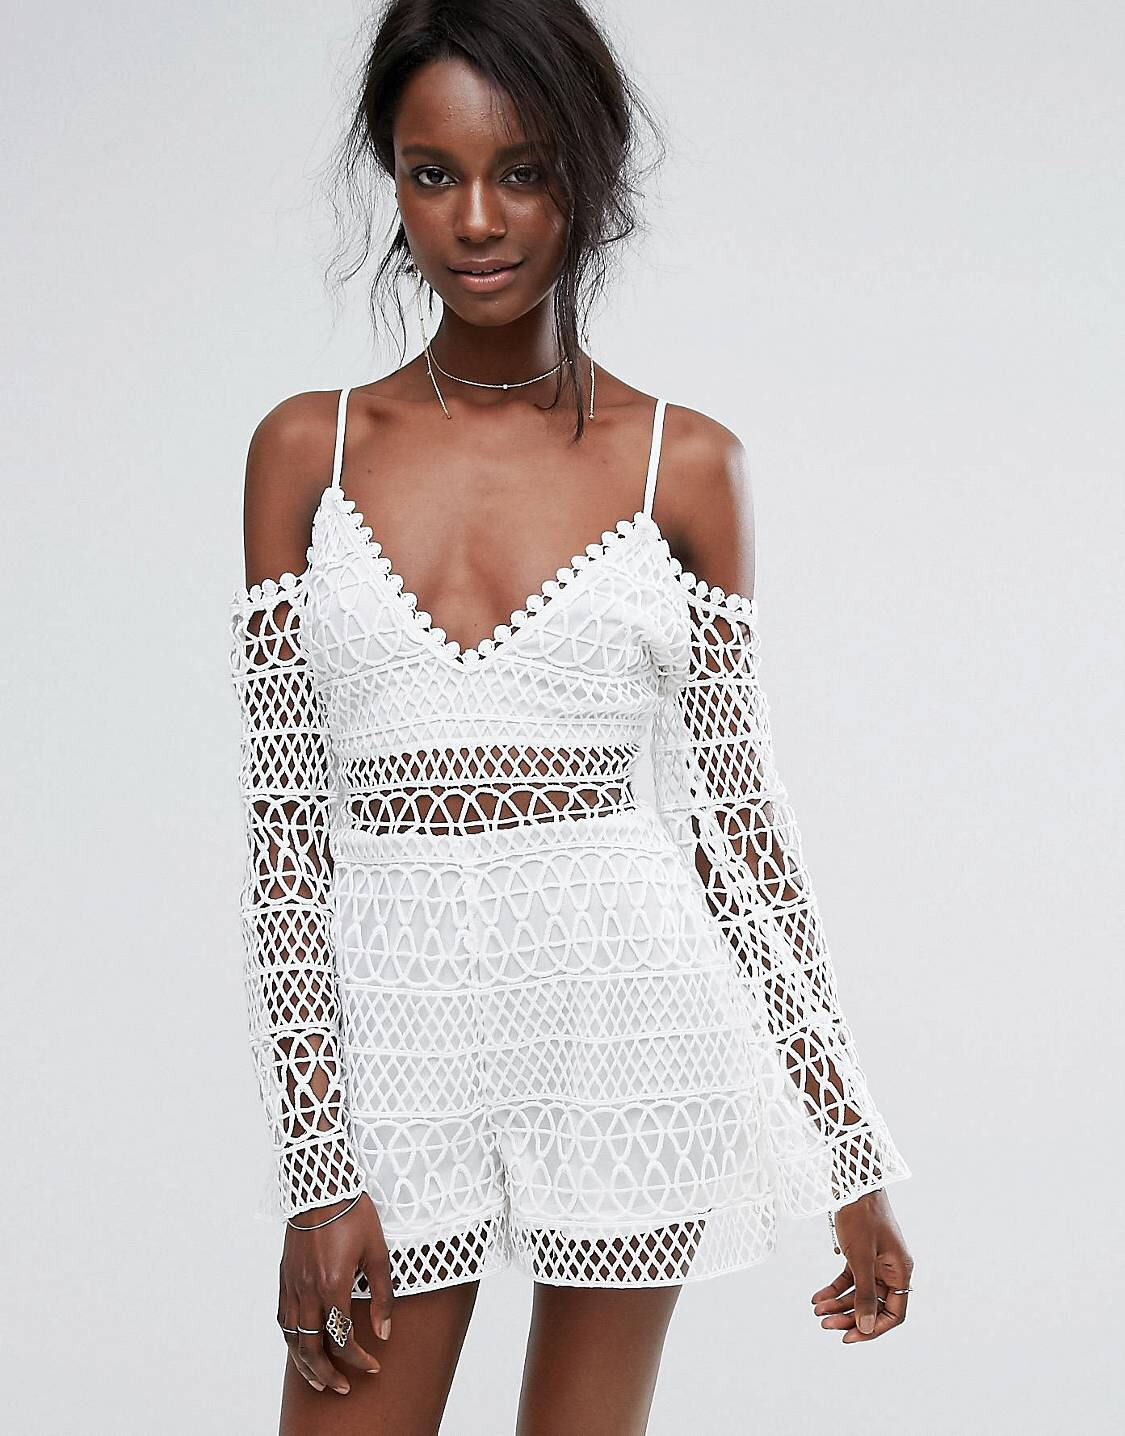 Crotchet somtin - - It's a new day and I'm sort of preferring it with the lining. However If i were to remove the lining, it'd be replaced with a nude colour body suit.